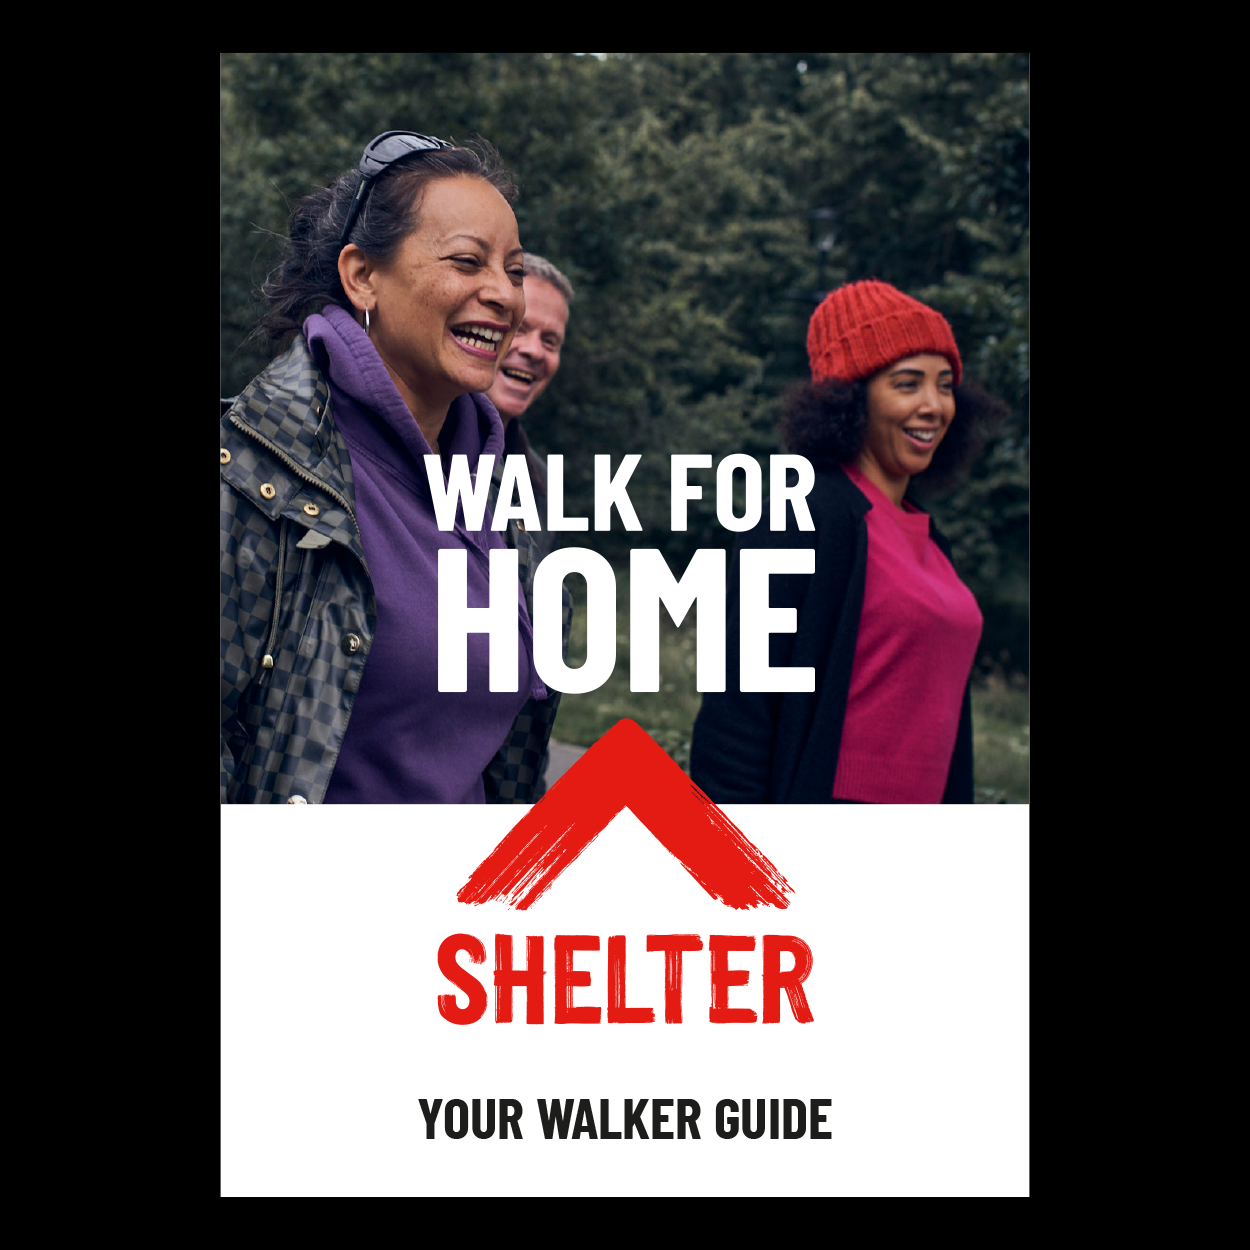 Preview image of Walk for Home walker guide